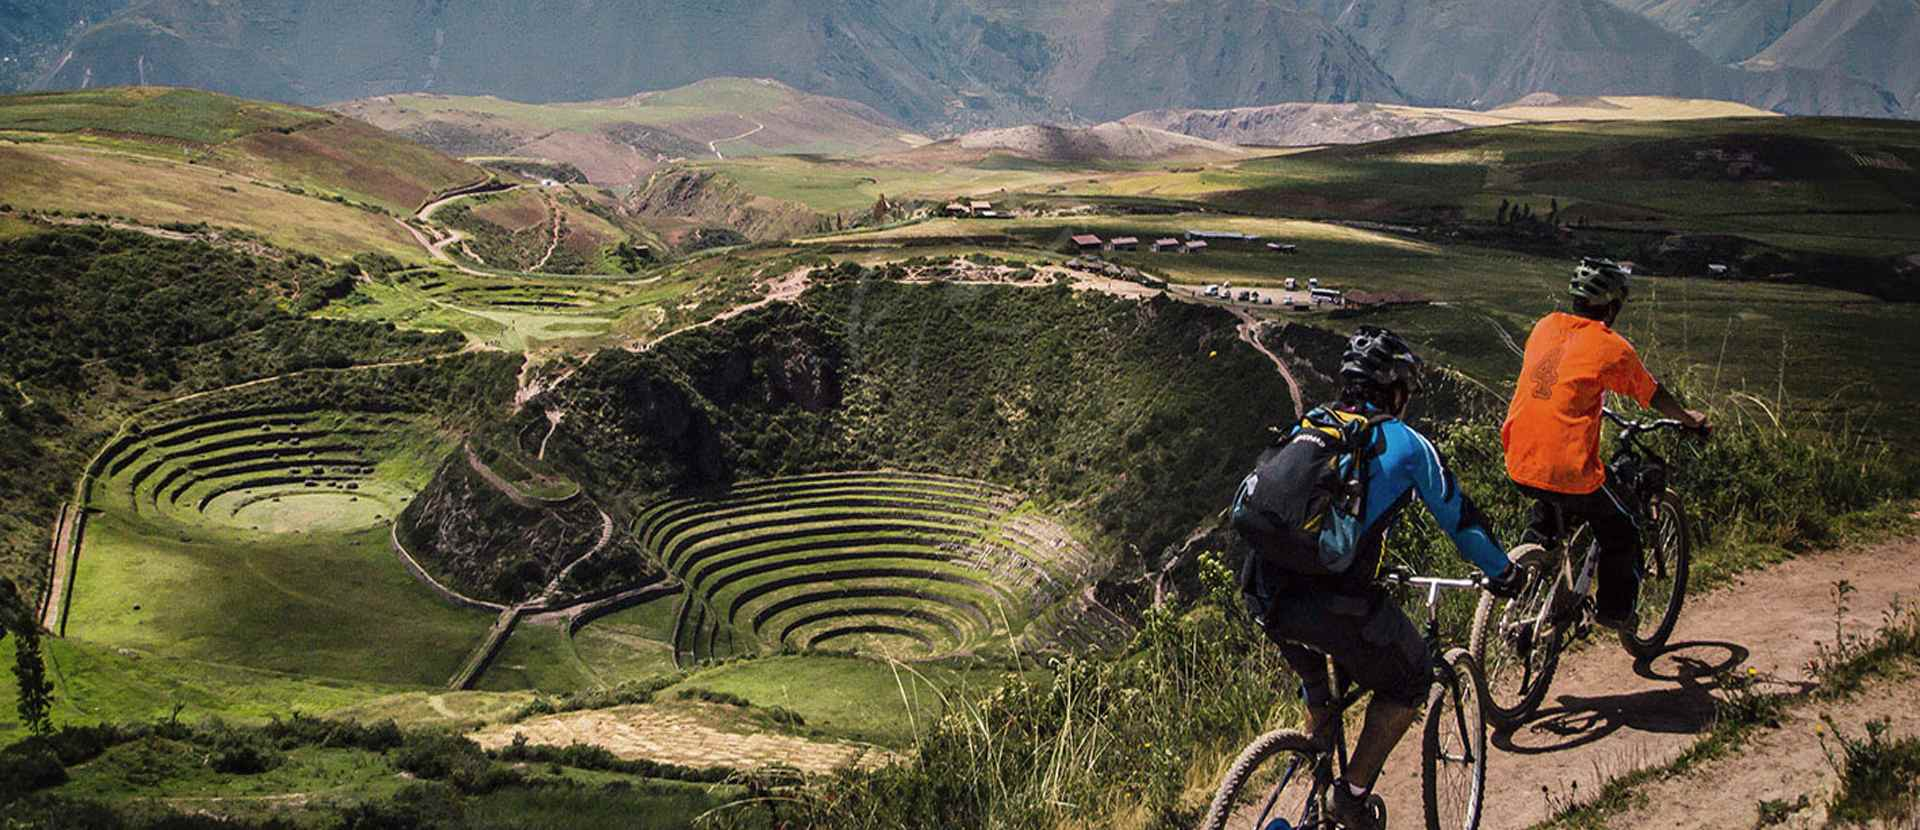 Tour en Bicicleta 1 dia (Maras, Moray) -      INKA JUNGLE TREKS